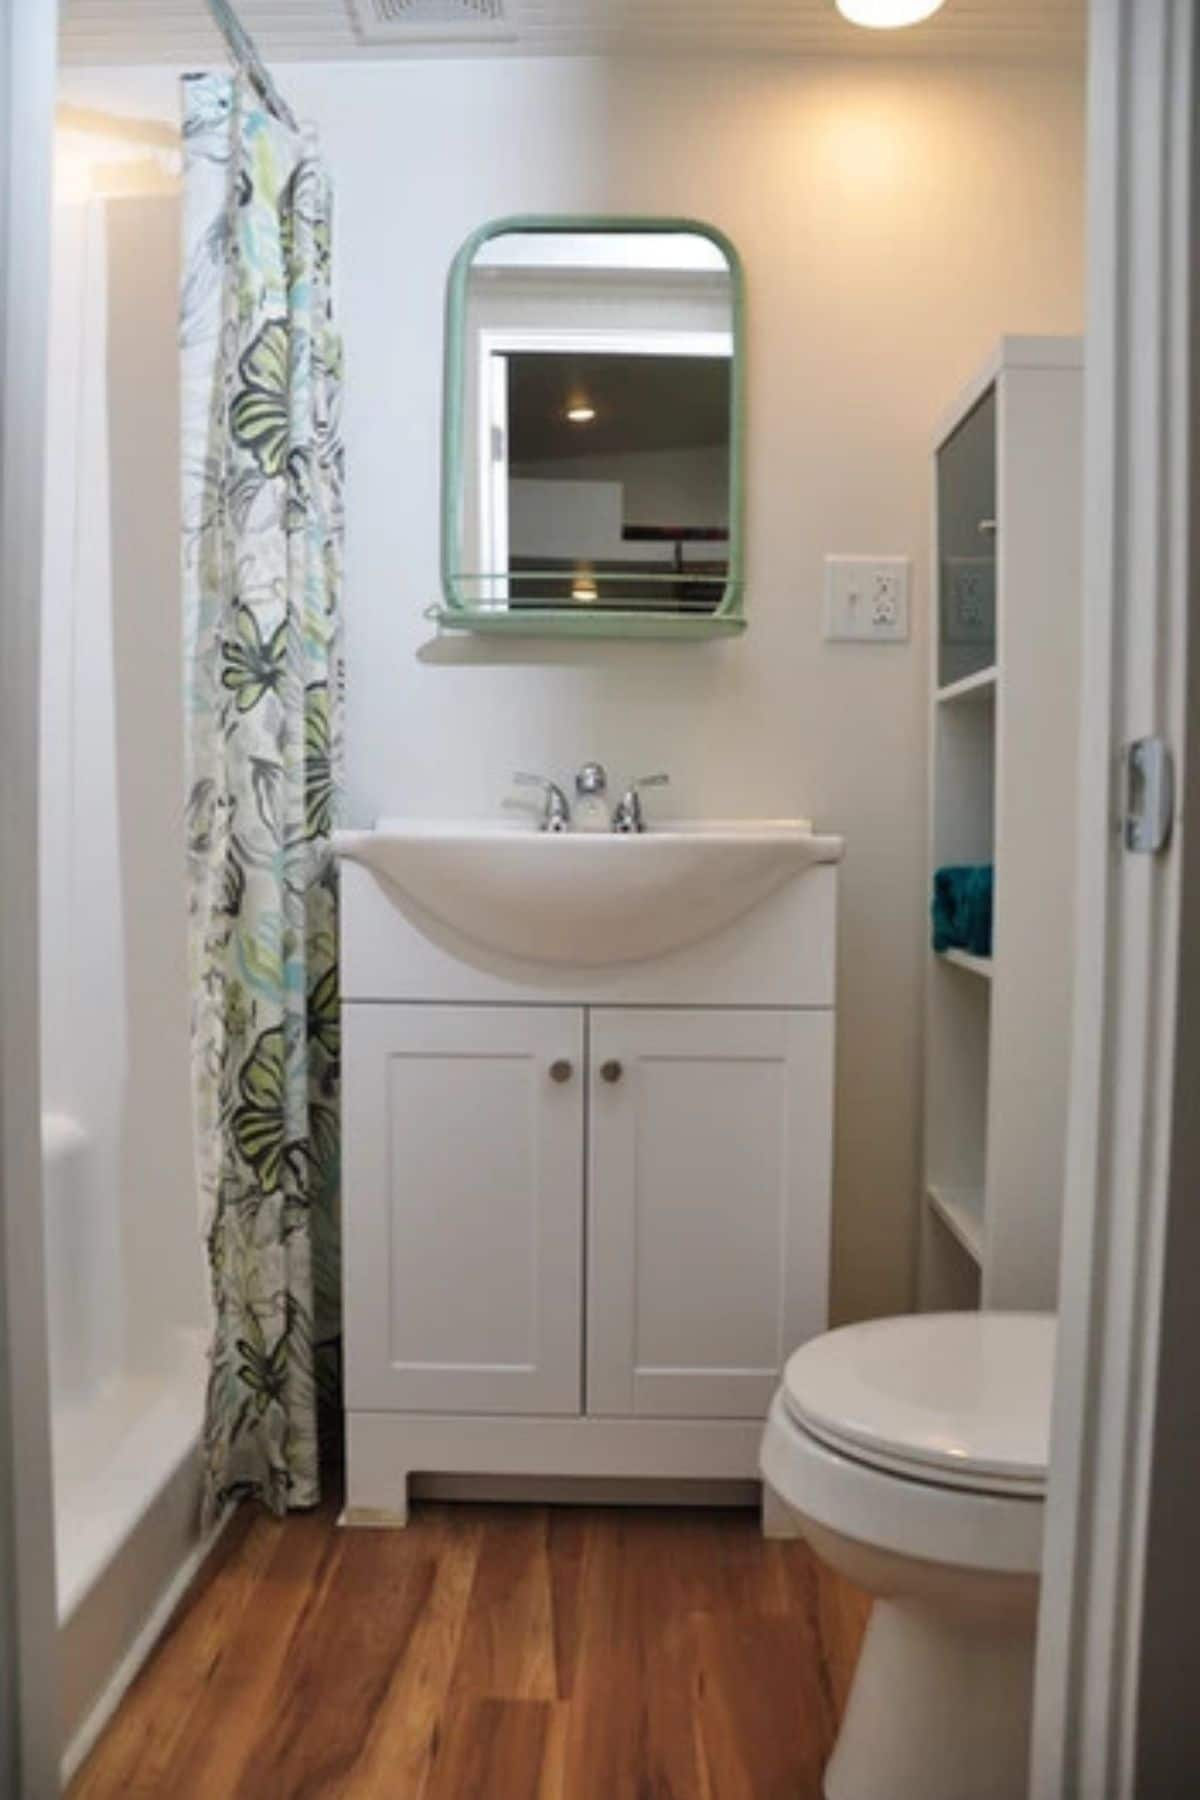 Modern white vanity under wall mounted mirror by shower curtain